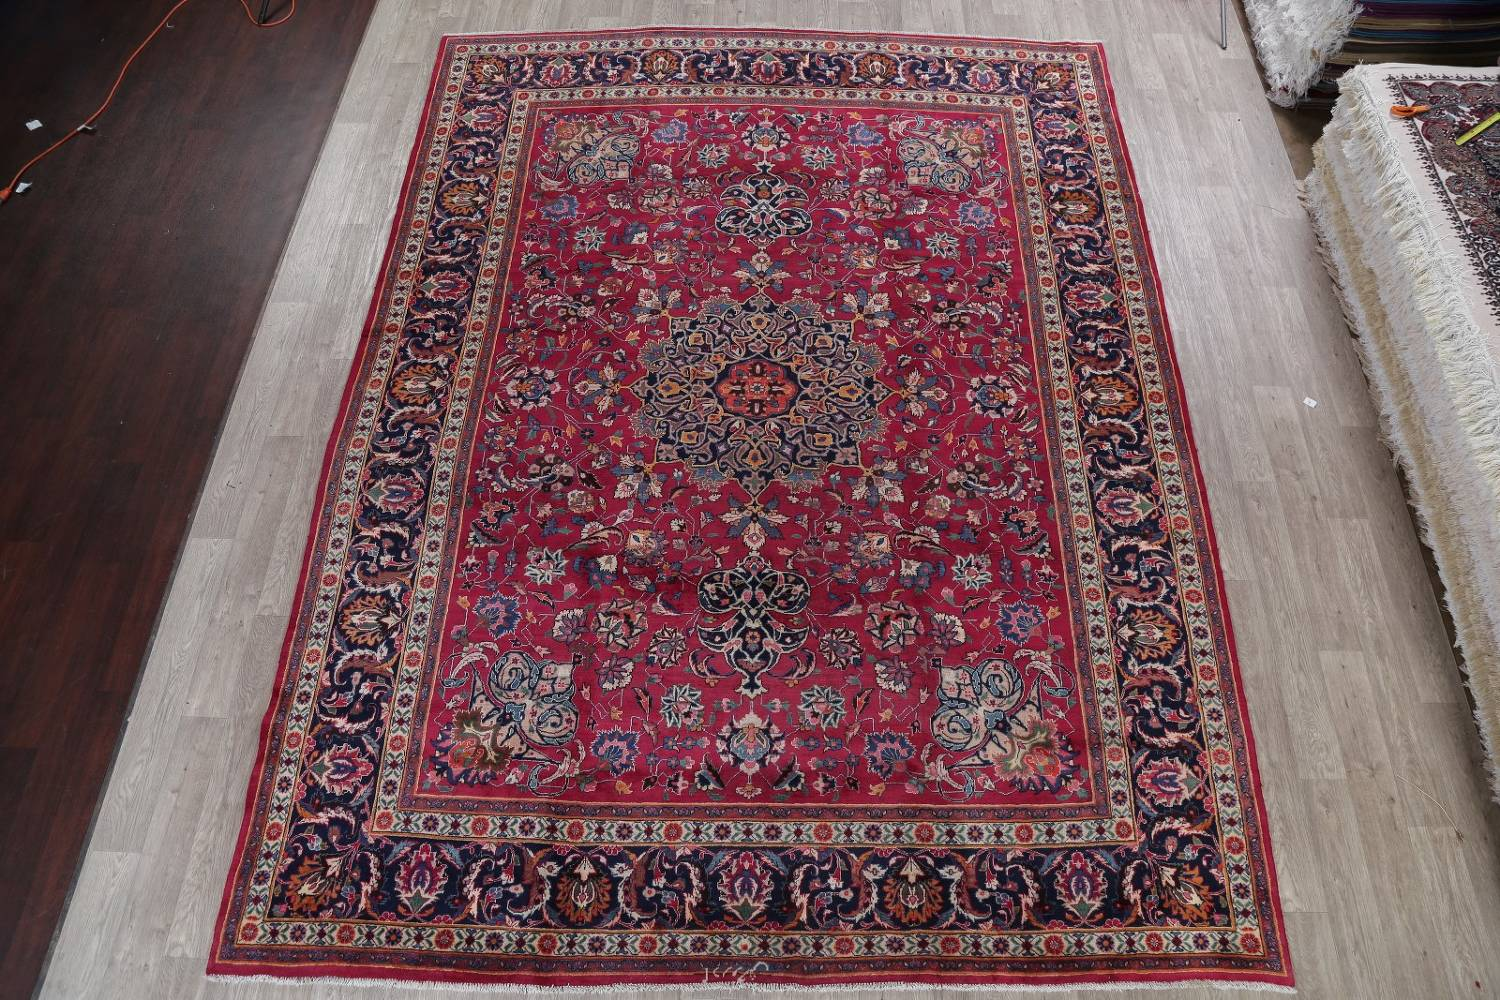 Antique Geometric Mashad Persian Hand-Knotted 10x13 Wool Area Rug image 2